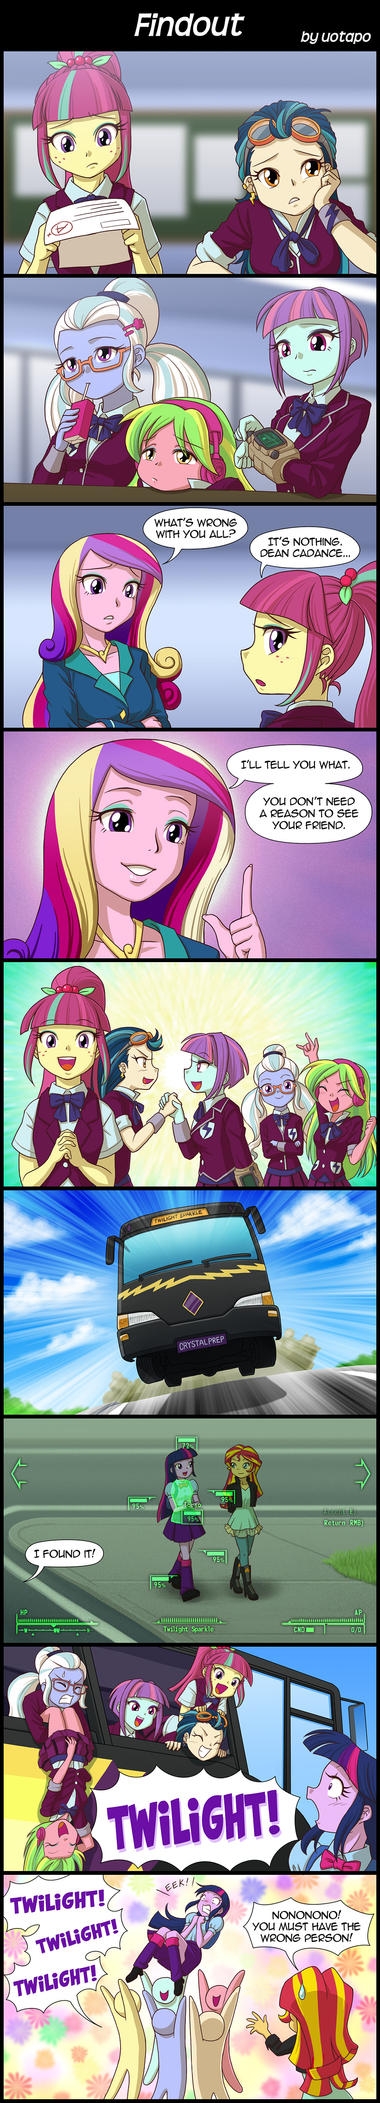 Findout by uotapo